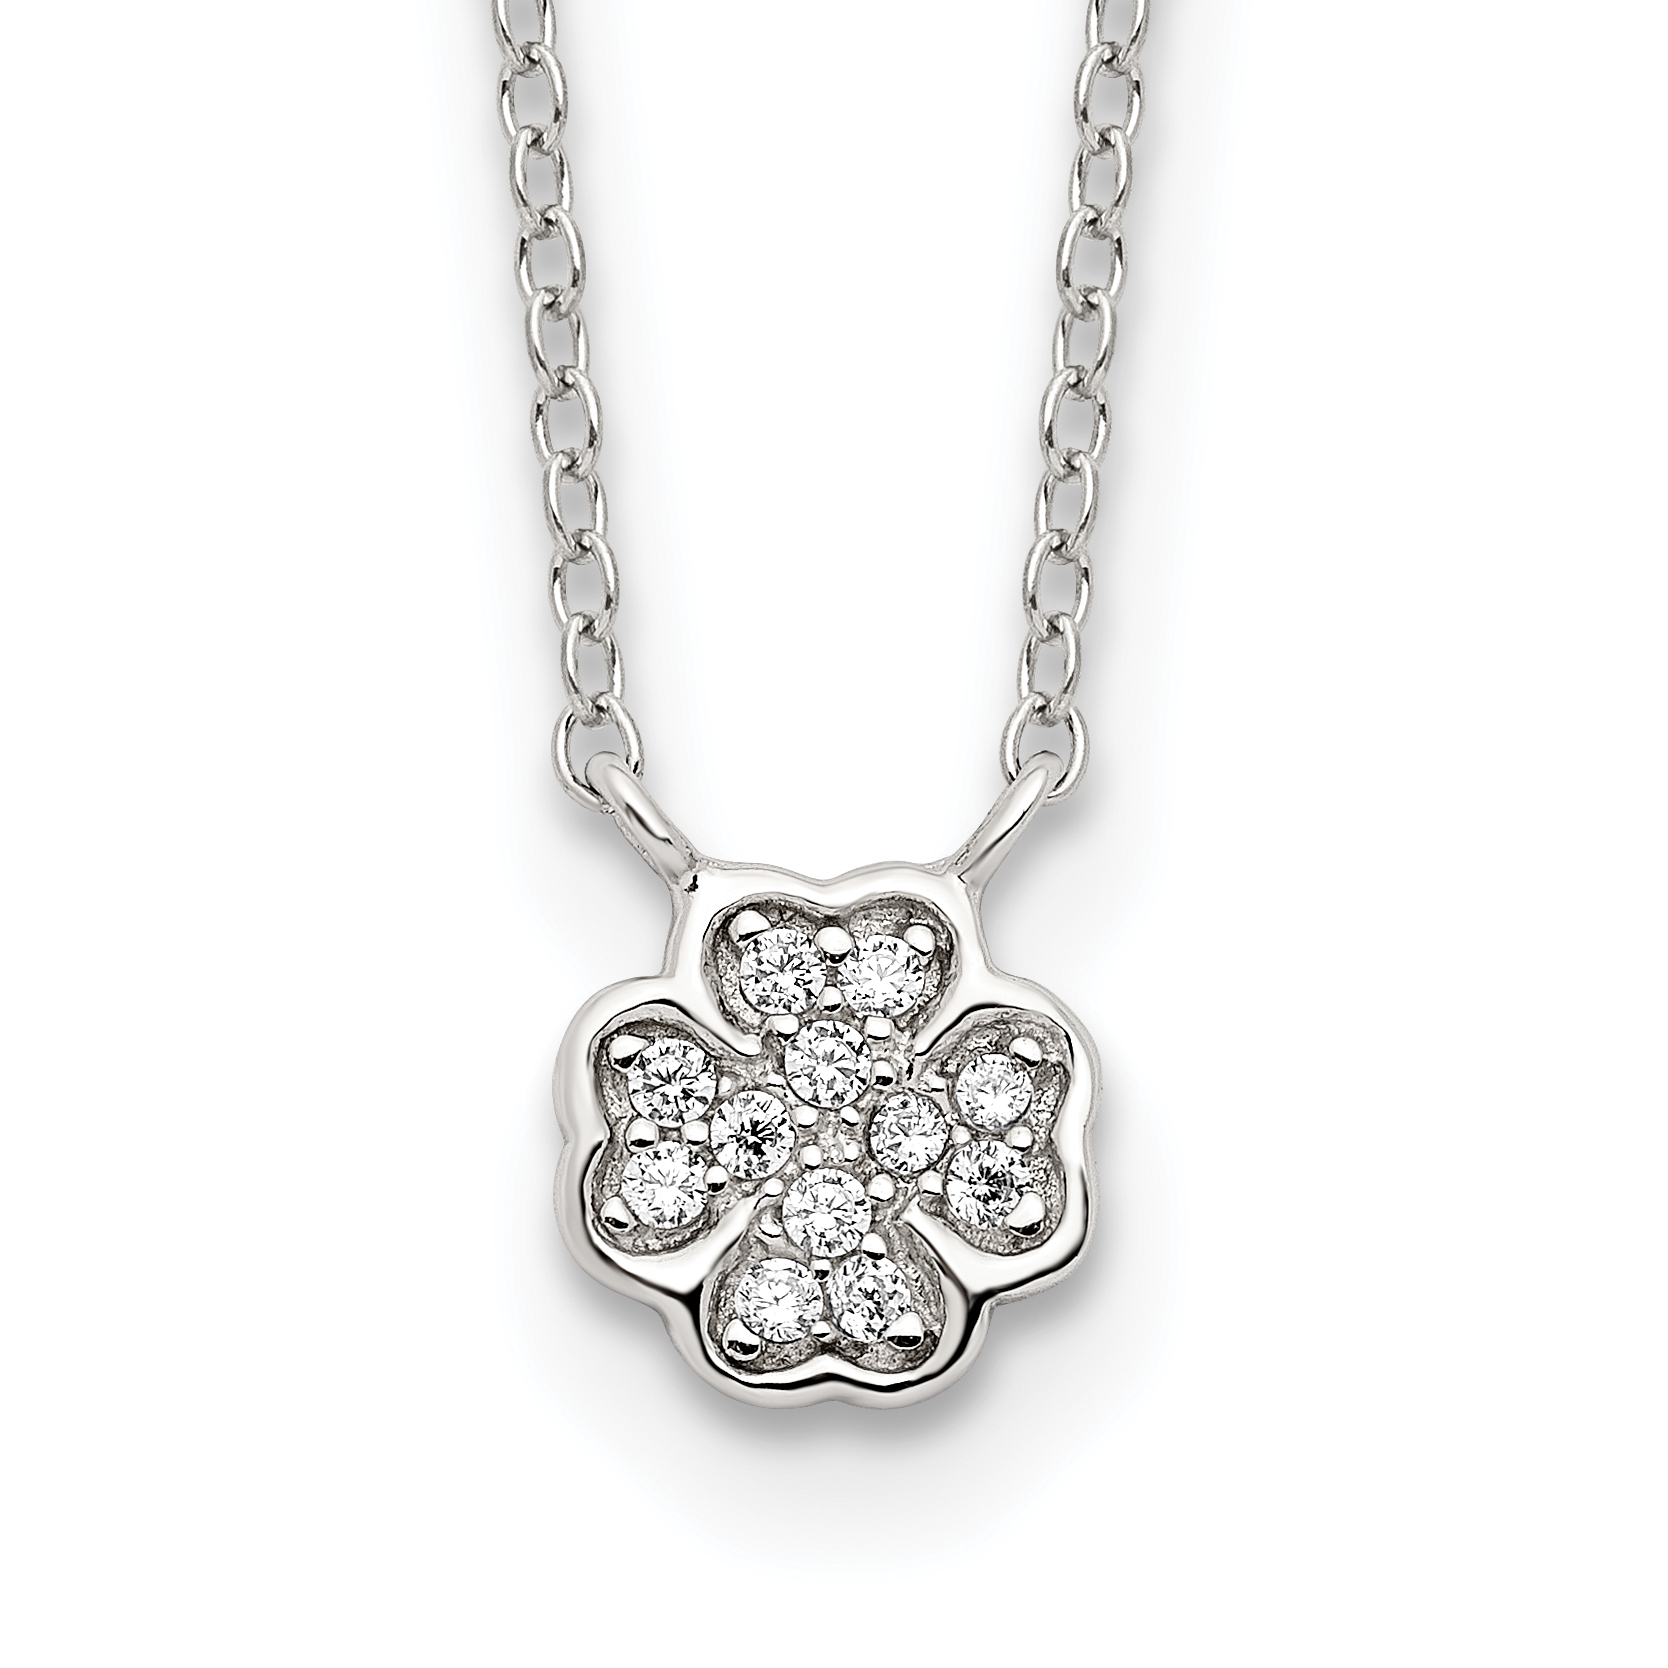 Sterling Silver Polished White CZ Four Leaf Clover Necklace   Weight: 1.4 grams, Length: 16mm, Width: mm